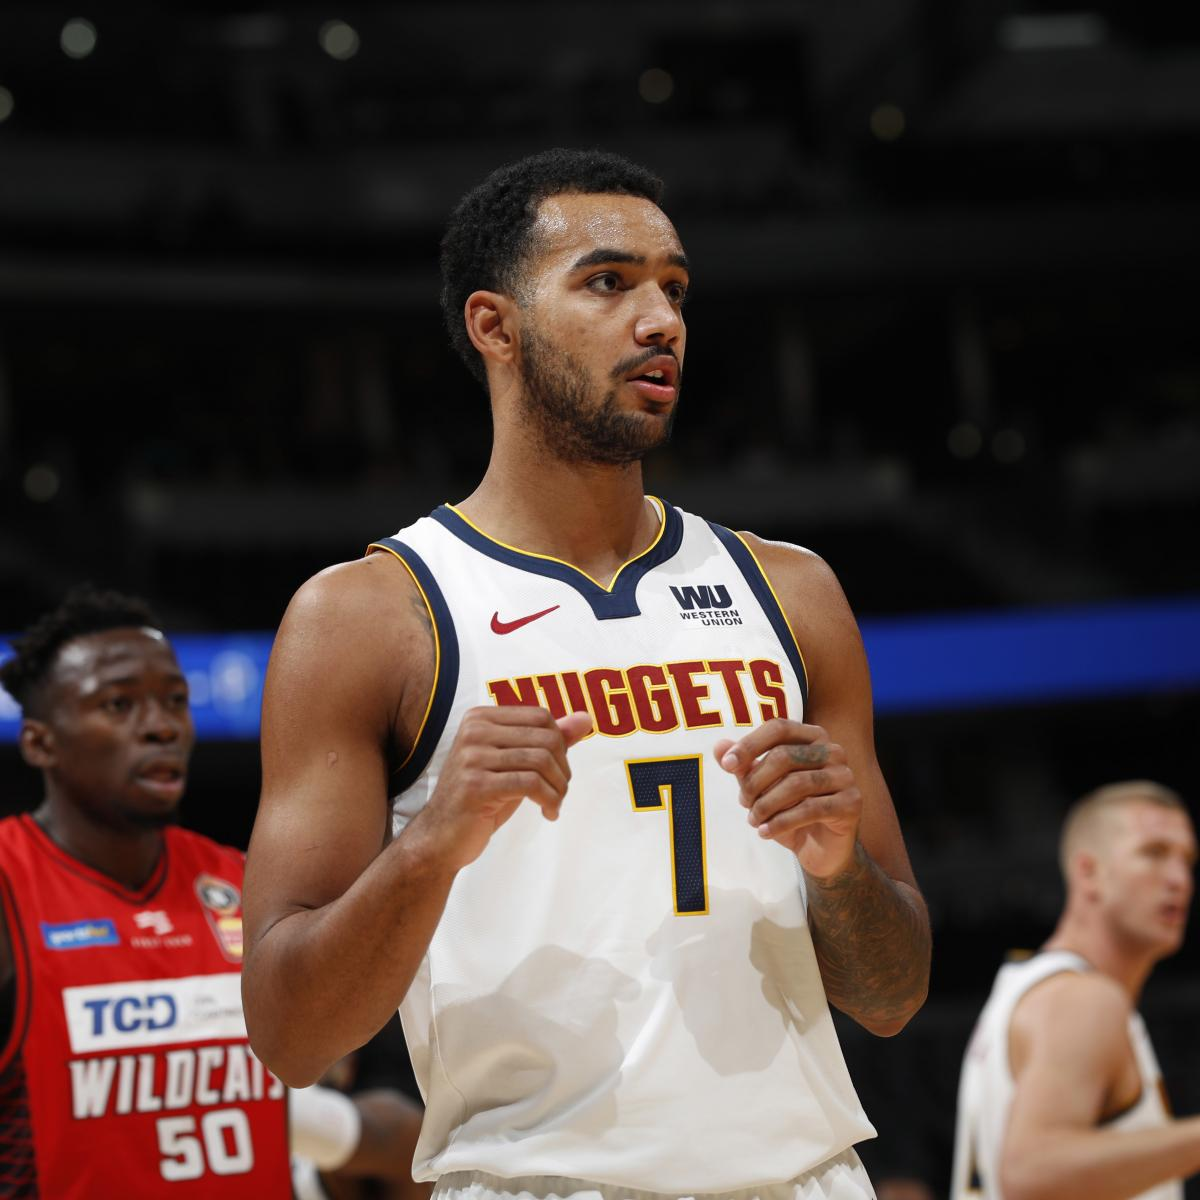 Report: Trey Lyles Gets Qualifying Contract Offer From